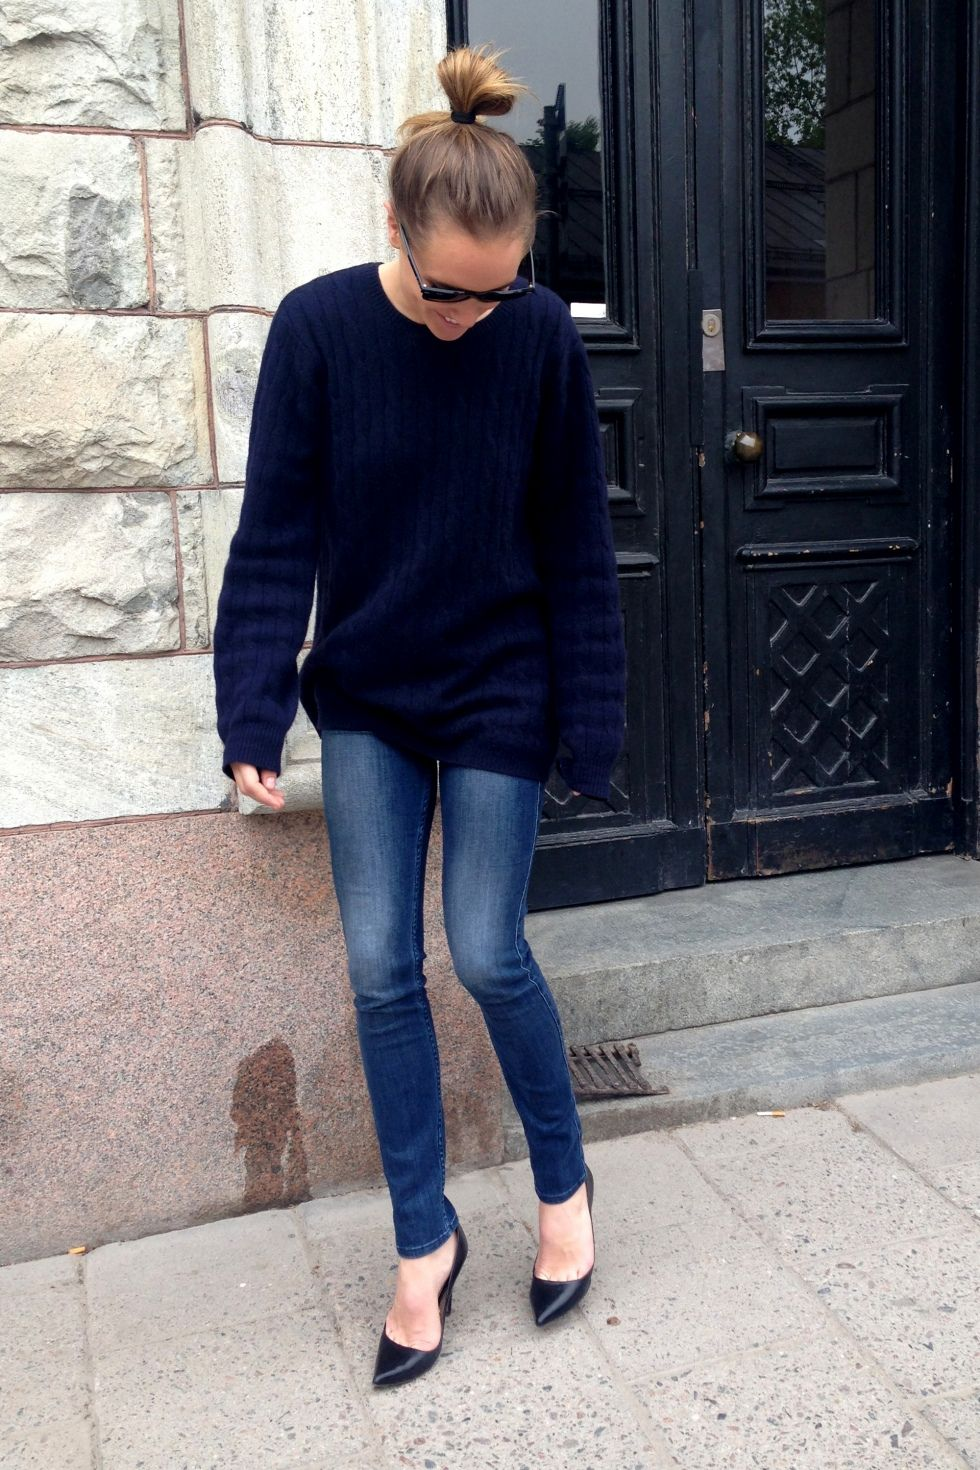 big sweater, skinny jeans and pointy shoes.